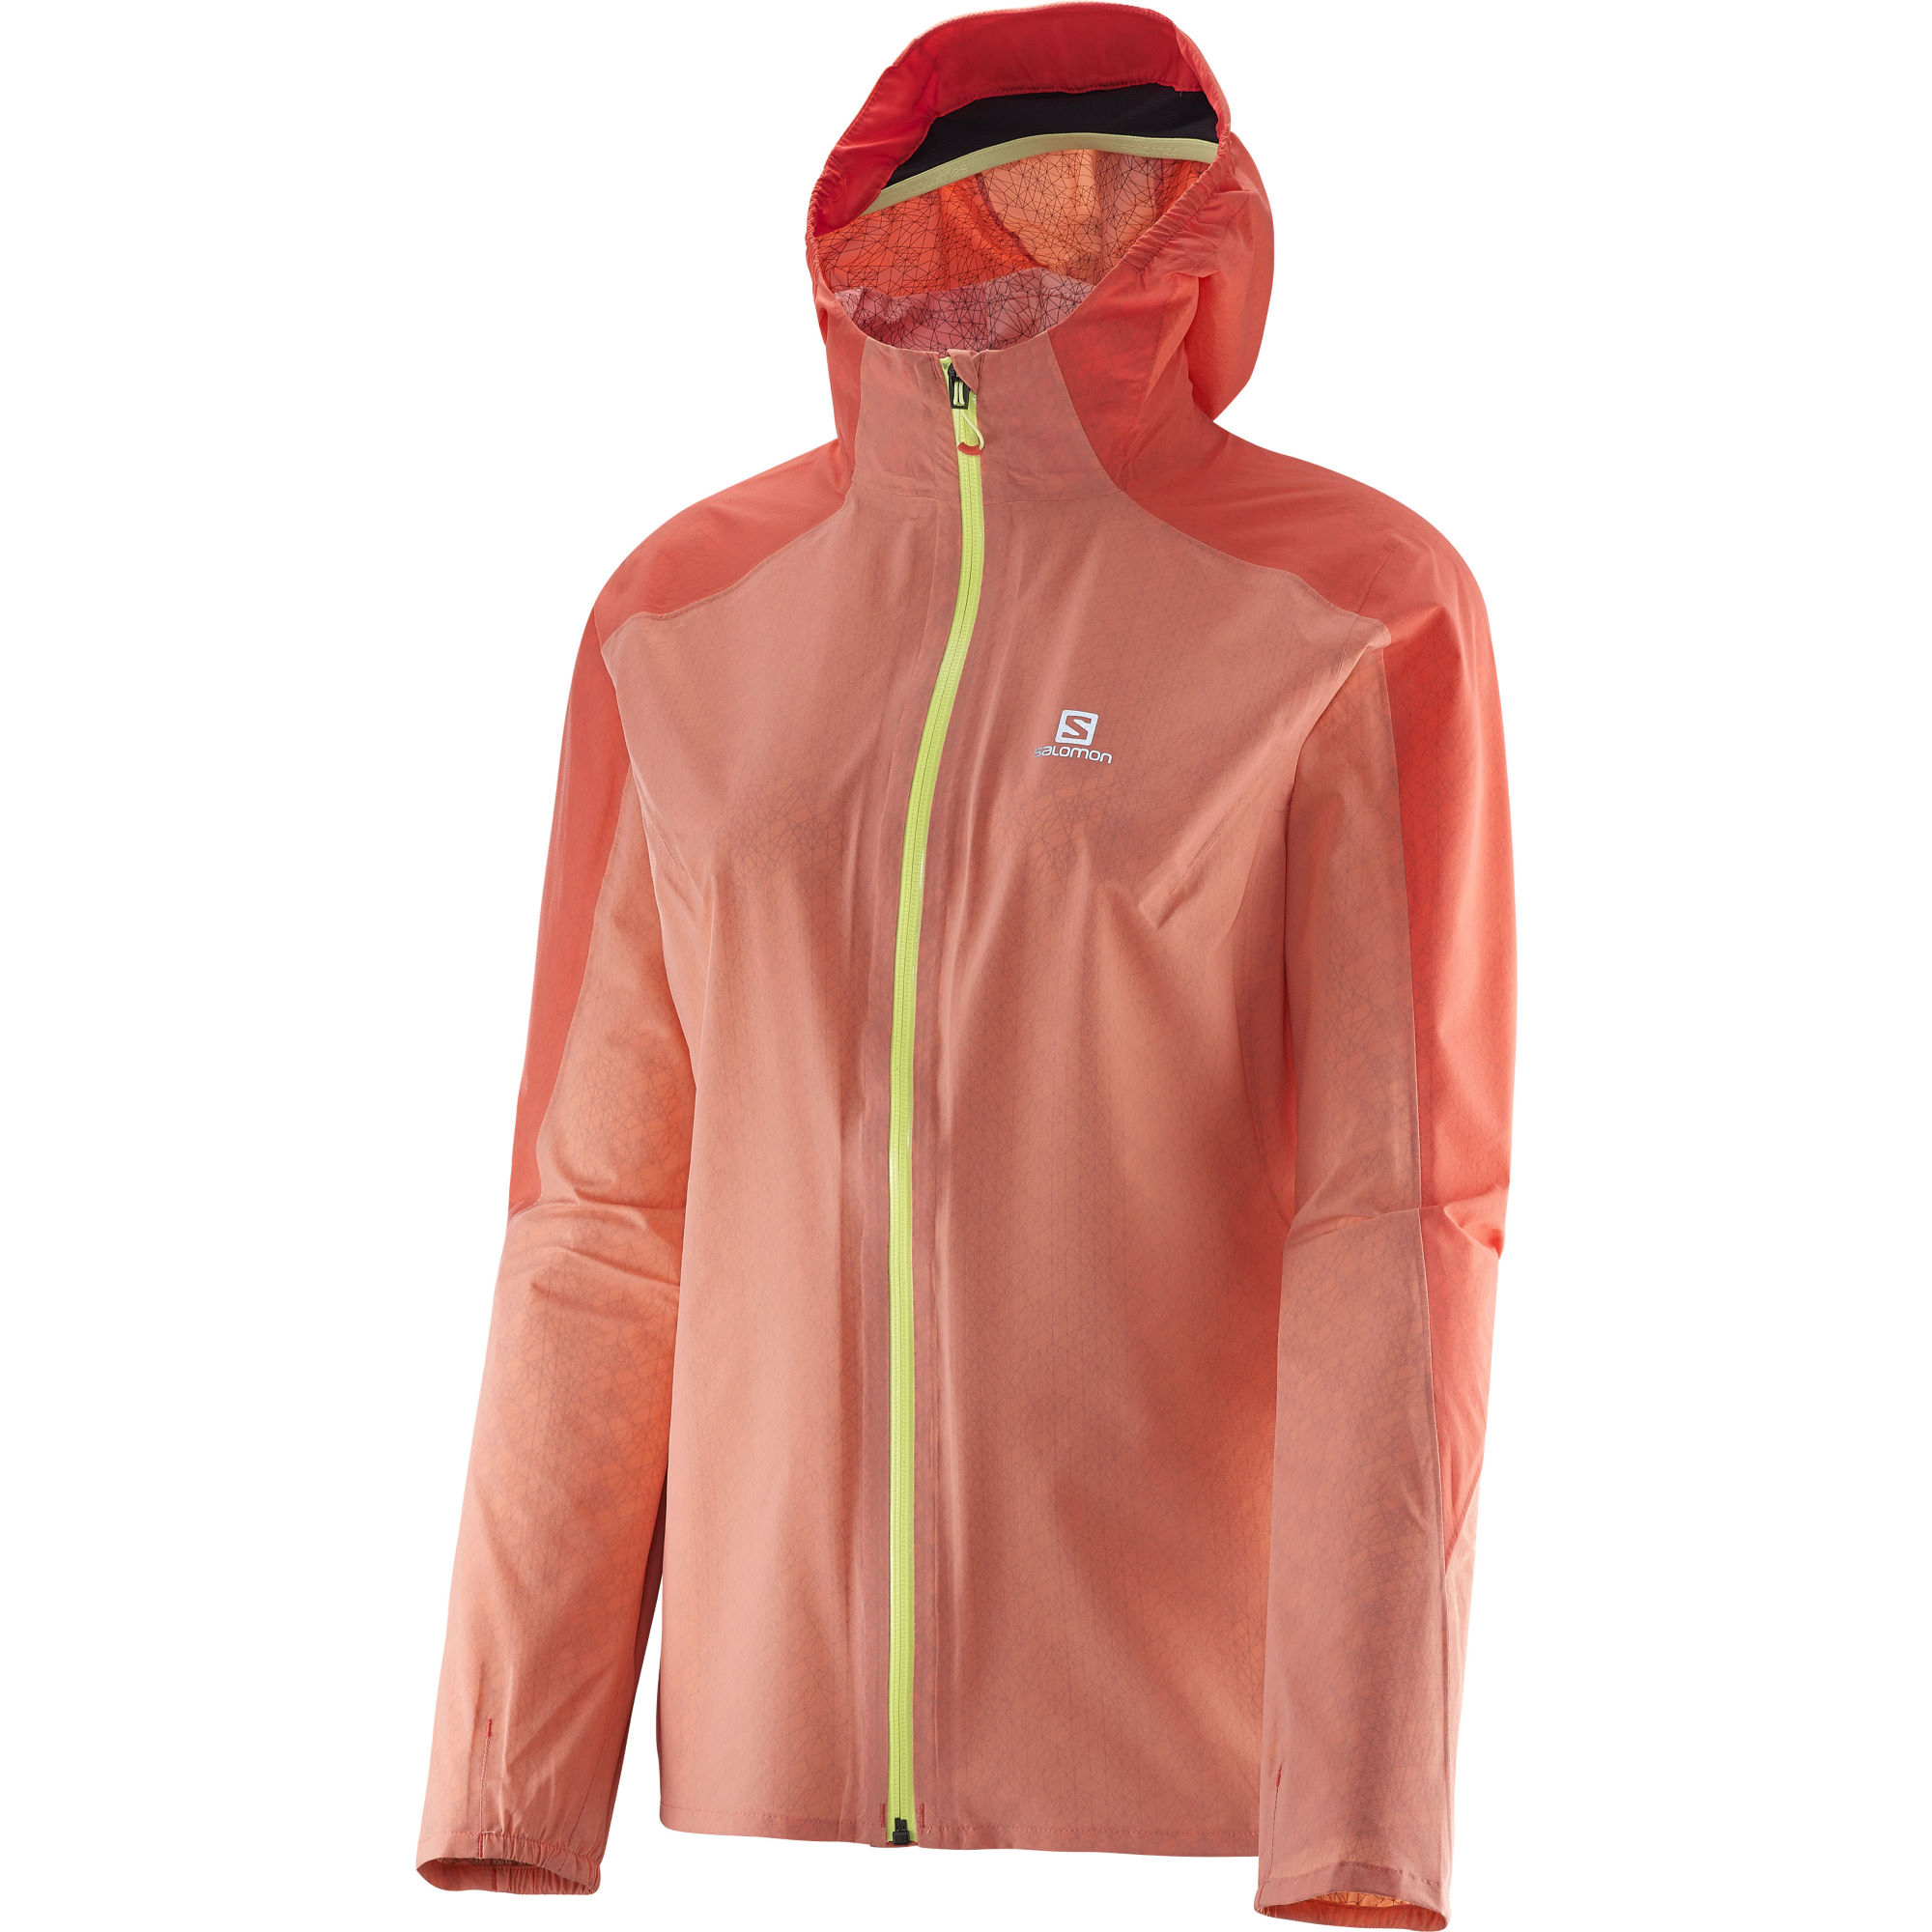 Wiggle | Salomon Women&39s Bonatti Waterproof Jacket - SS15